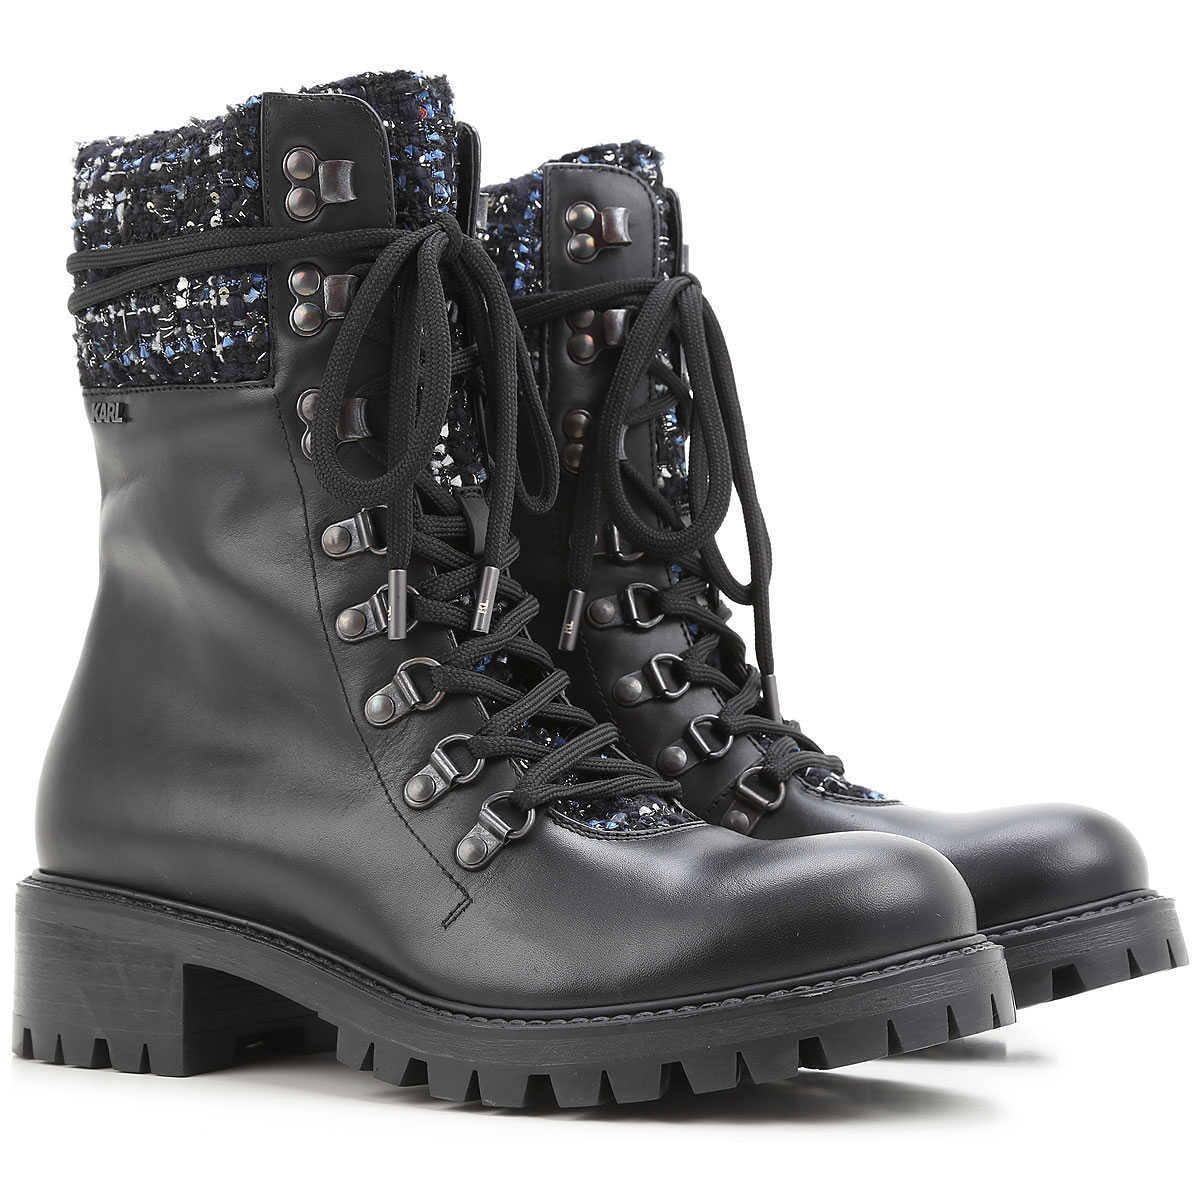 Karl Lagerfeld Boots for Women Booties On Sale DK - GOOFASH - Womens BOOTS